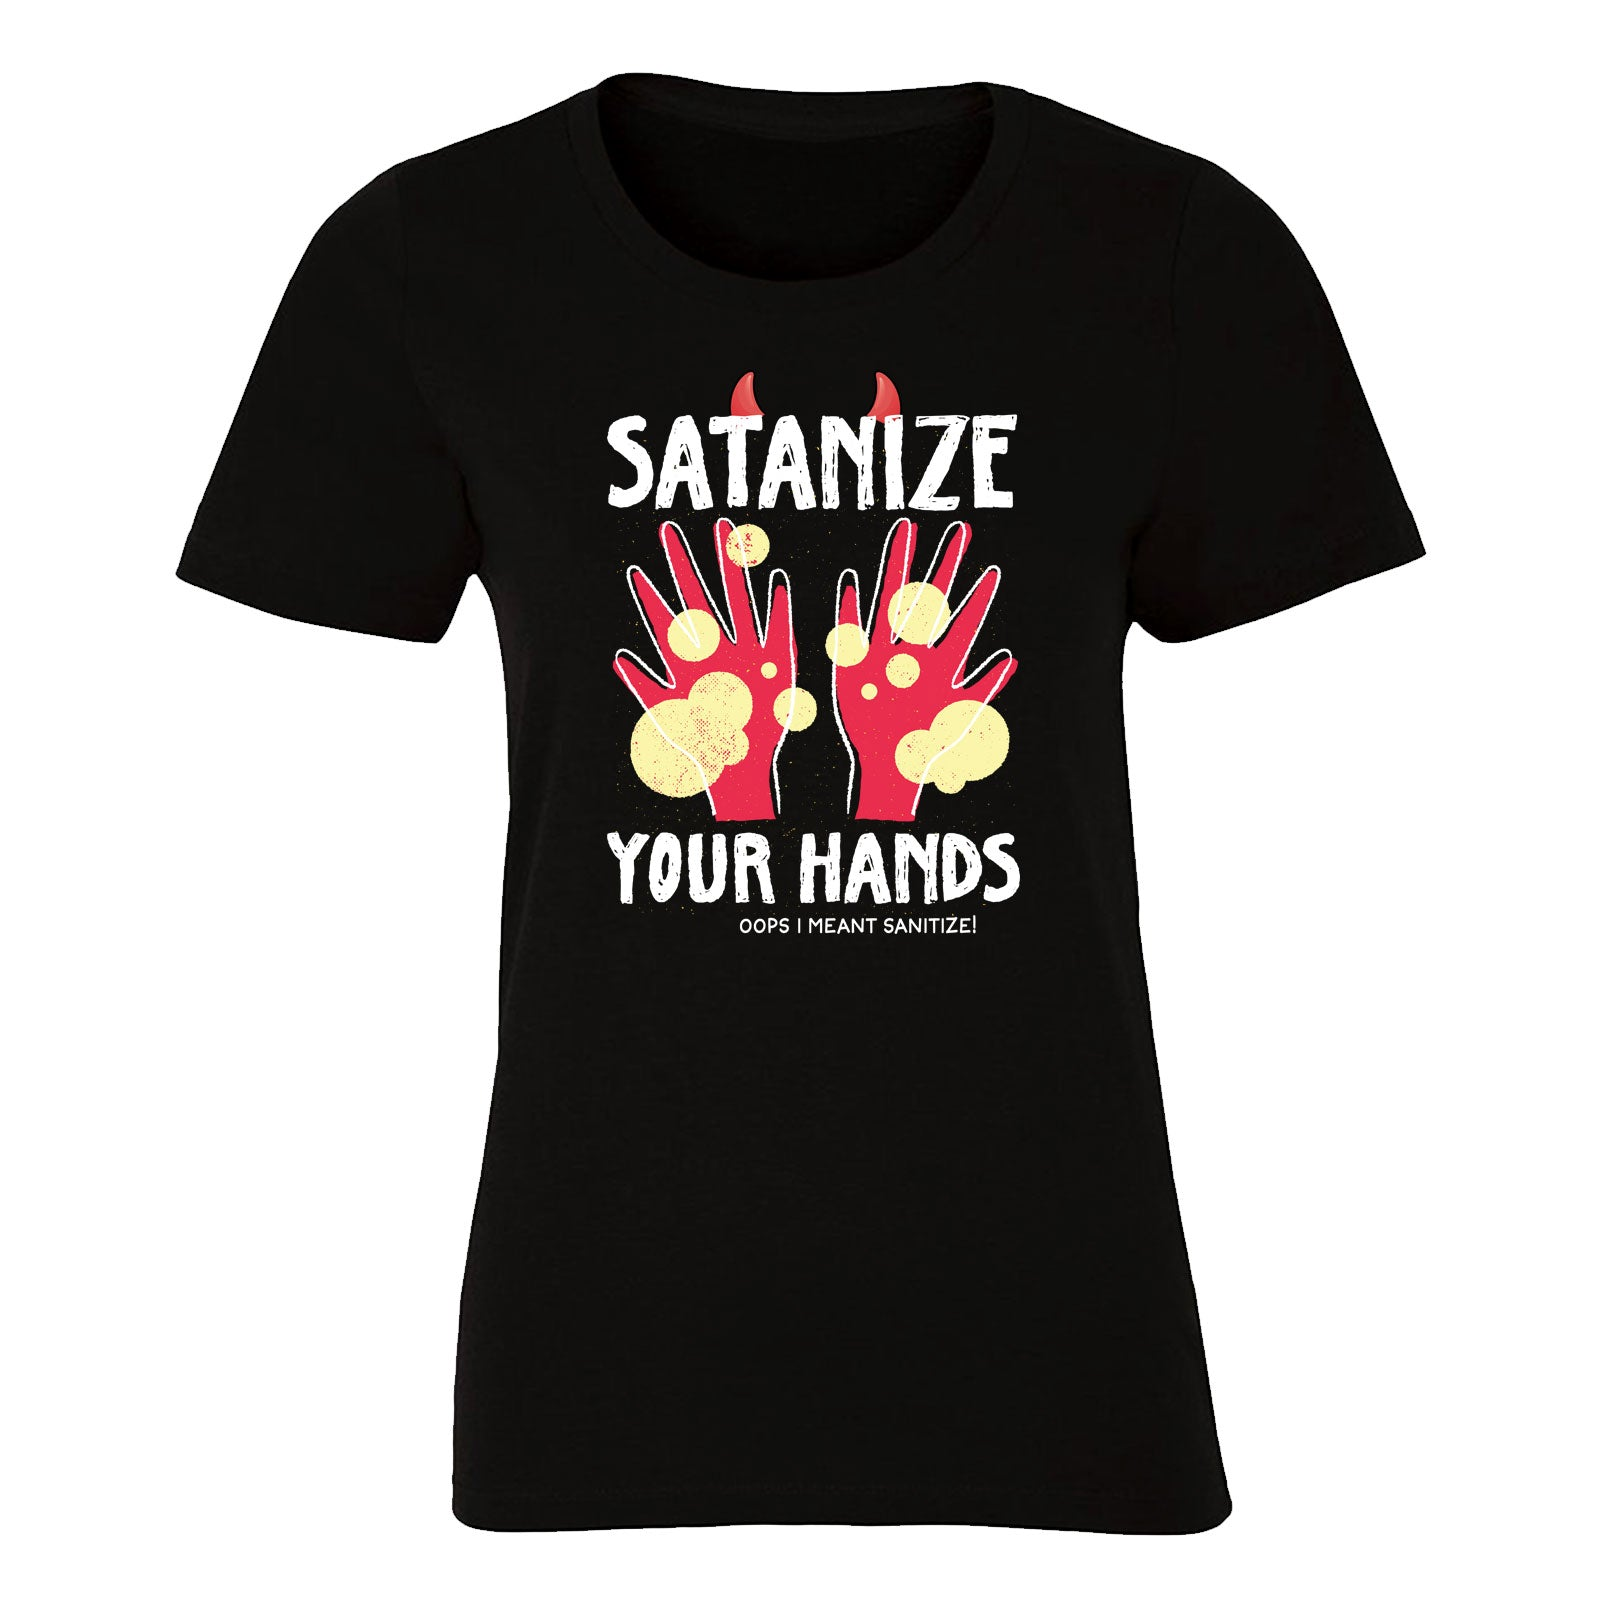 Satanize Your Hands (Women's)